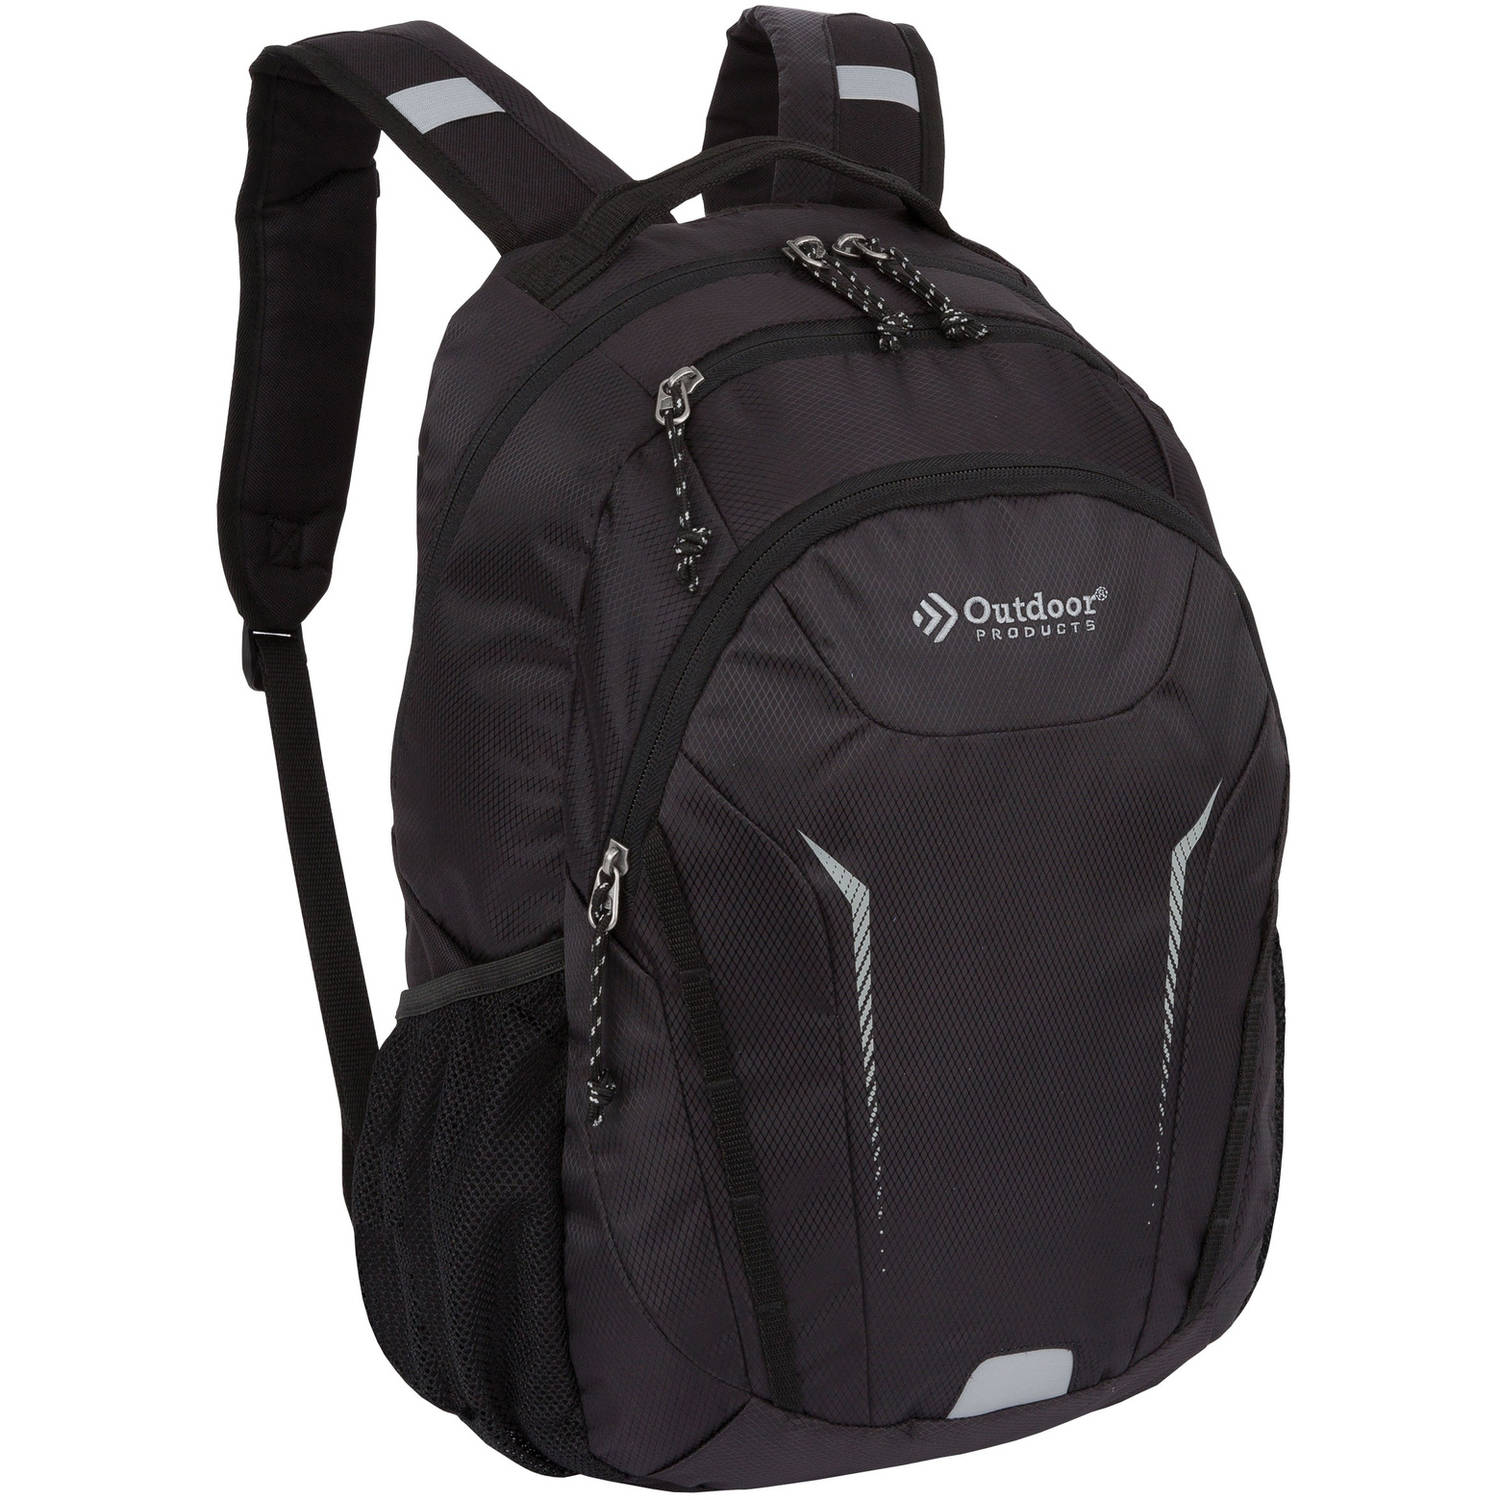 Outdoor Products Horizon Day Pack